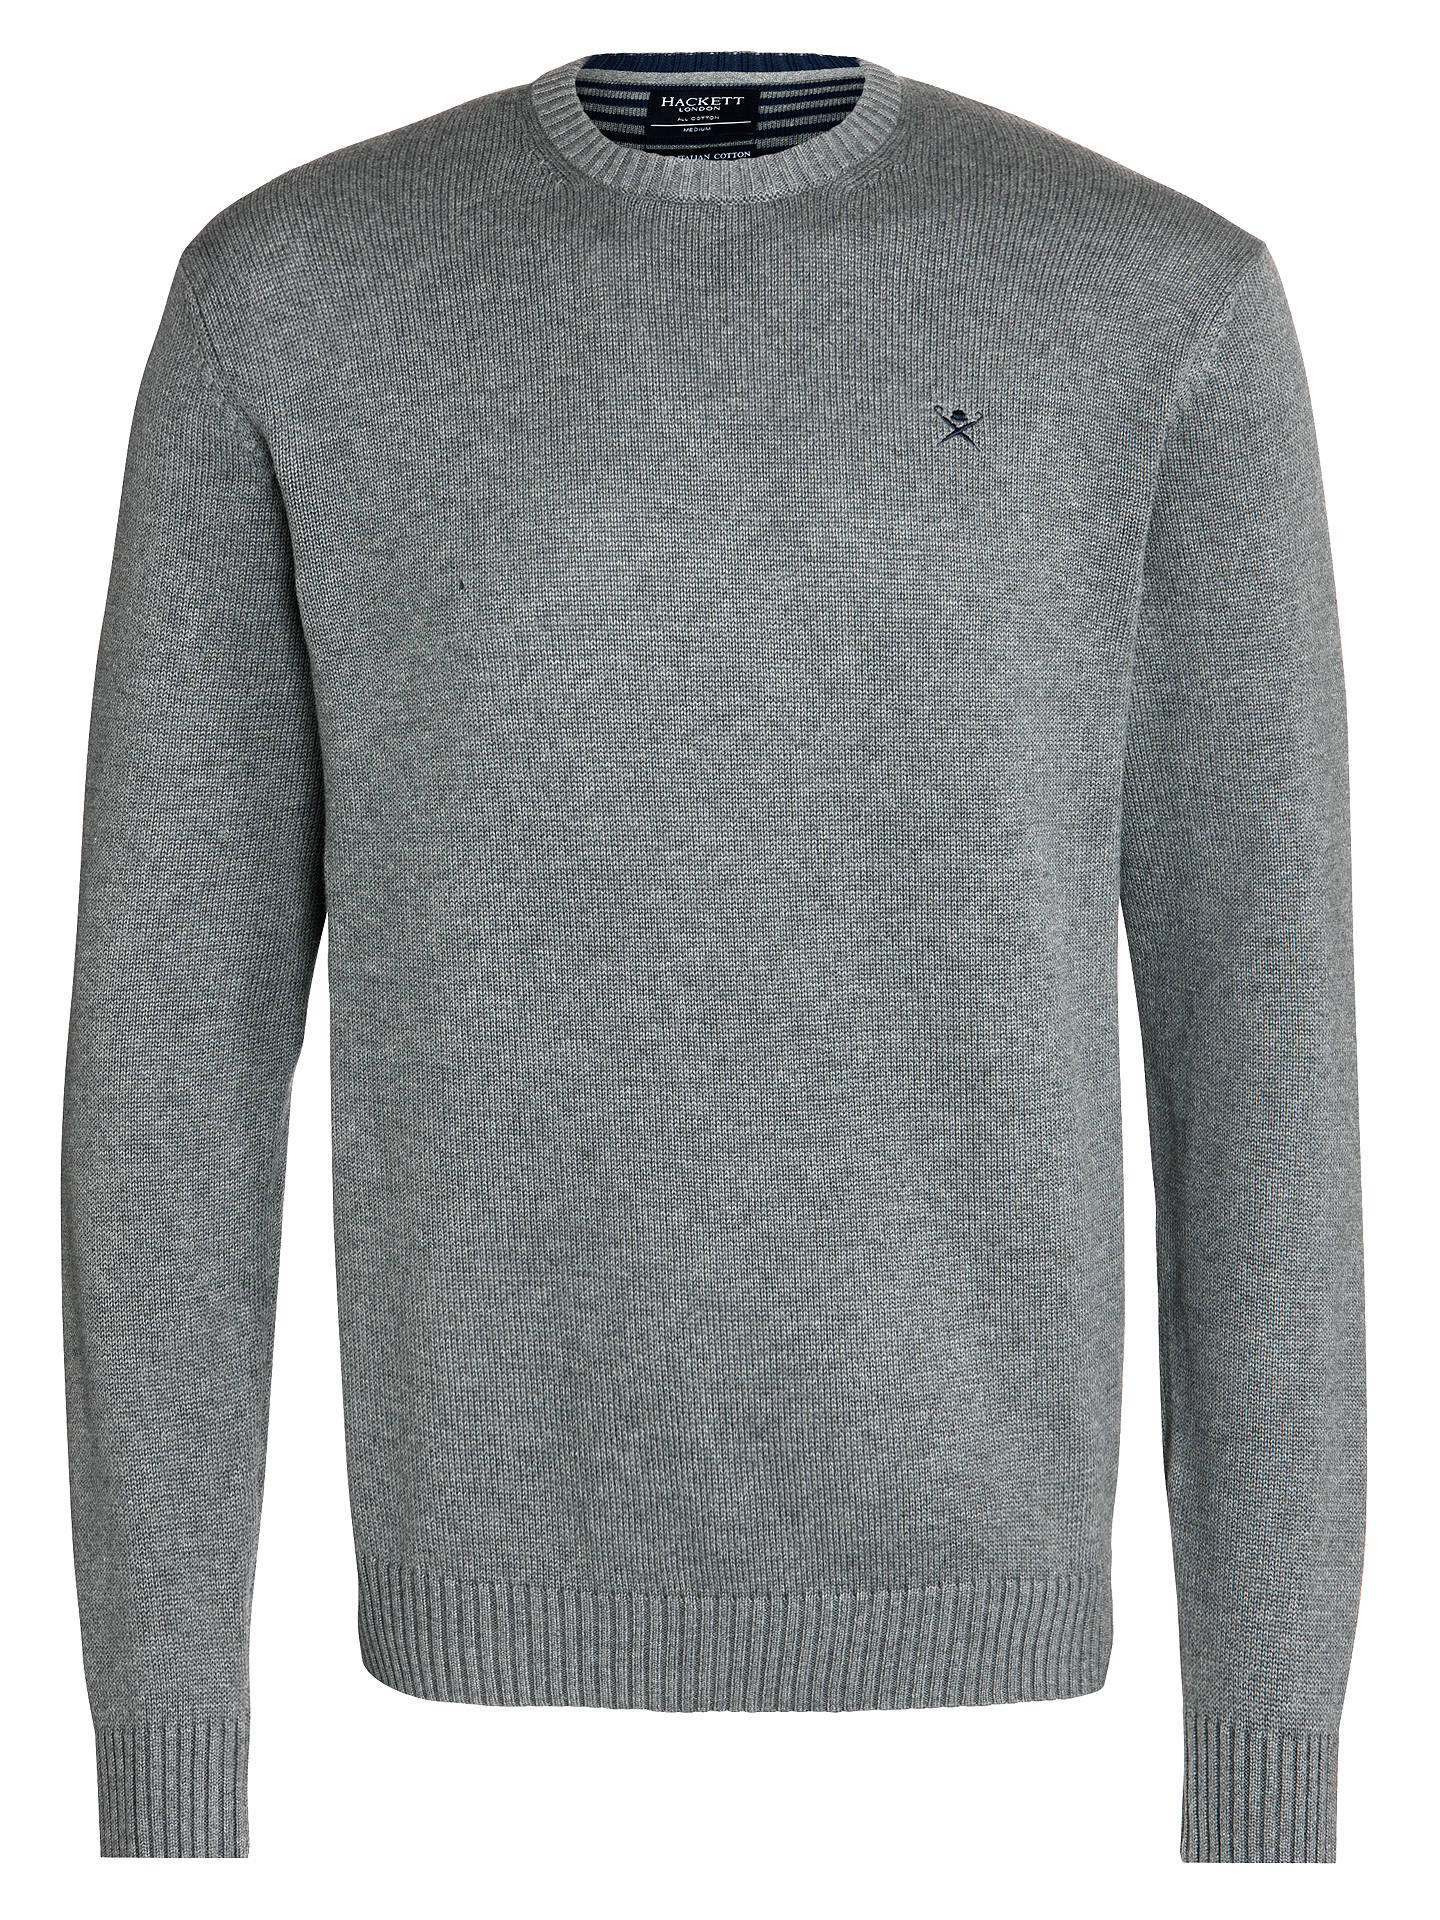 479c099d036502 Buy Hackett Cotton Crew Neck Jumper, Grey, S Online at johnlewis.com ...